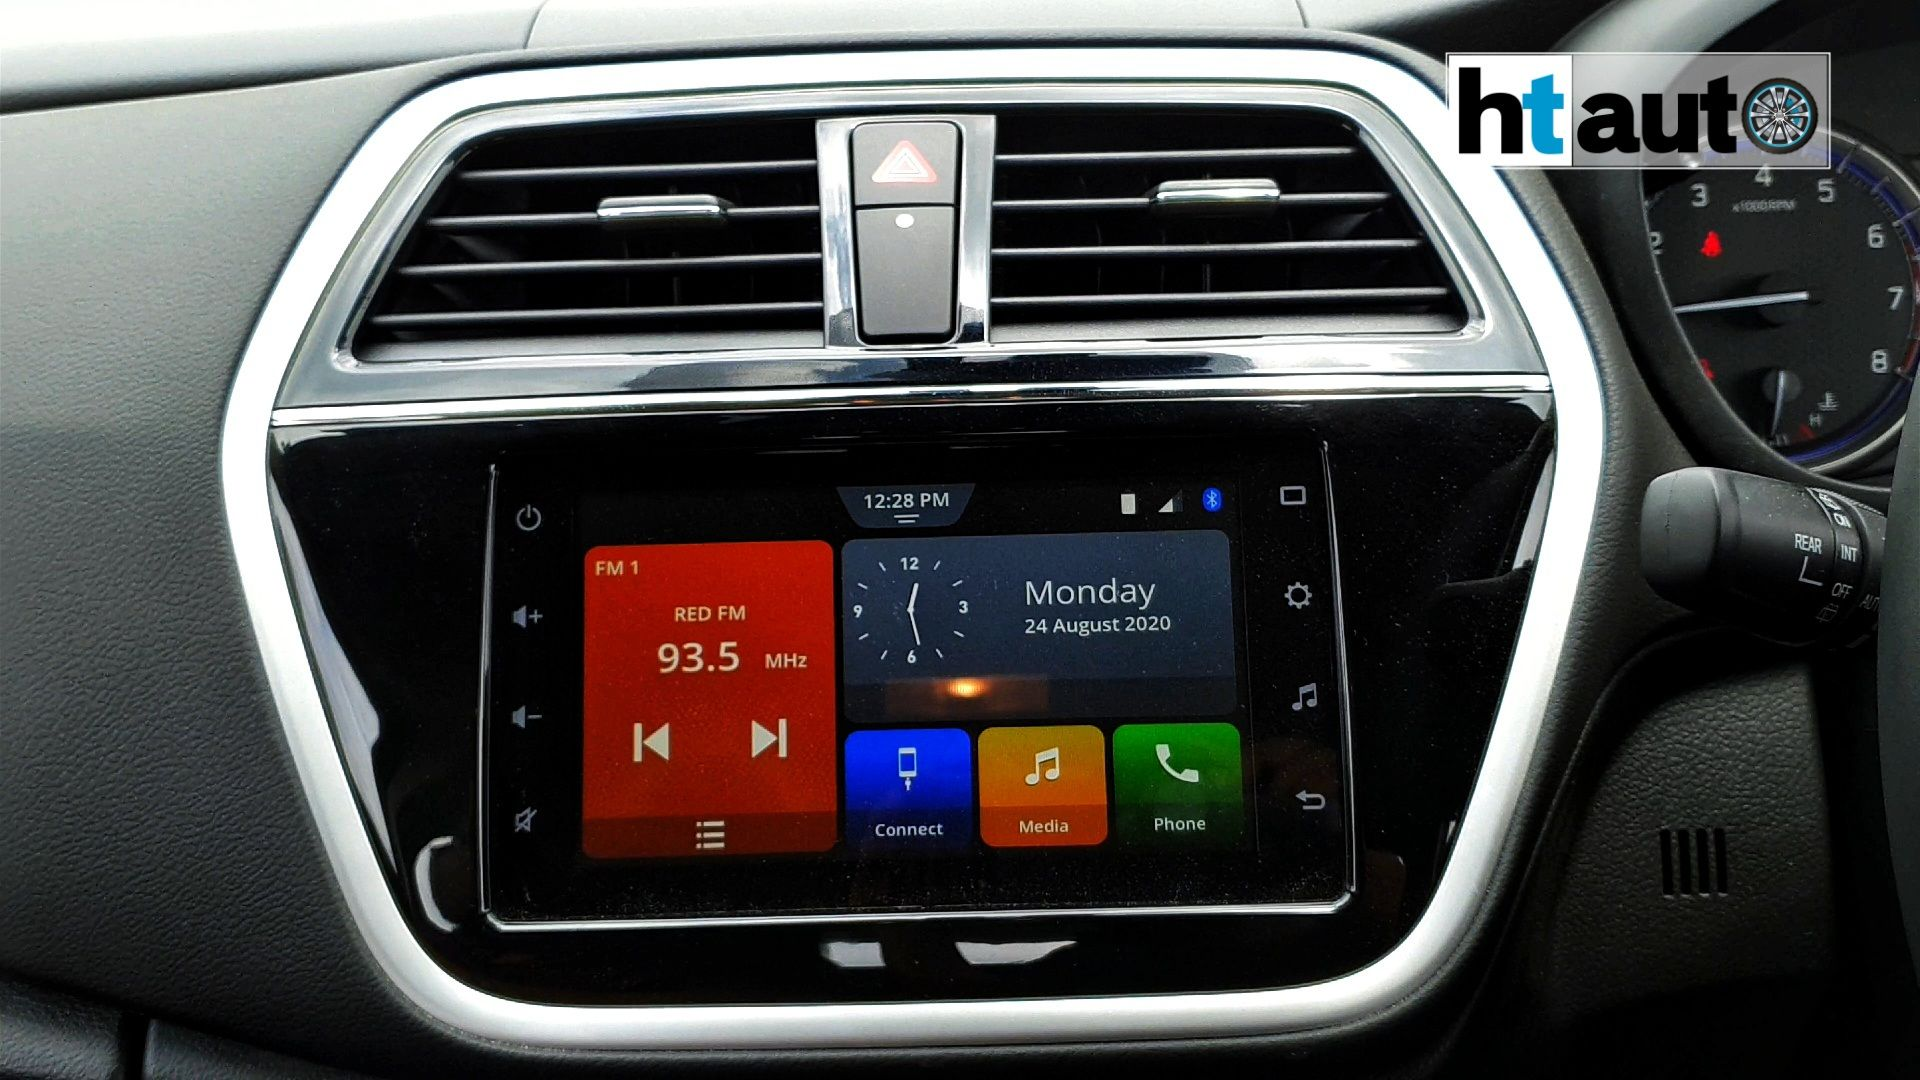 Inside, there is a new 7-inch Smartplay Studio 2.0 system. The infotainment screen is responsive to touch, easy to operate and offers smartphone connectivity options. (HTAuto/Sabyasachi Dasgupta)